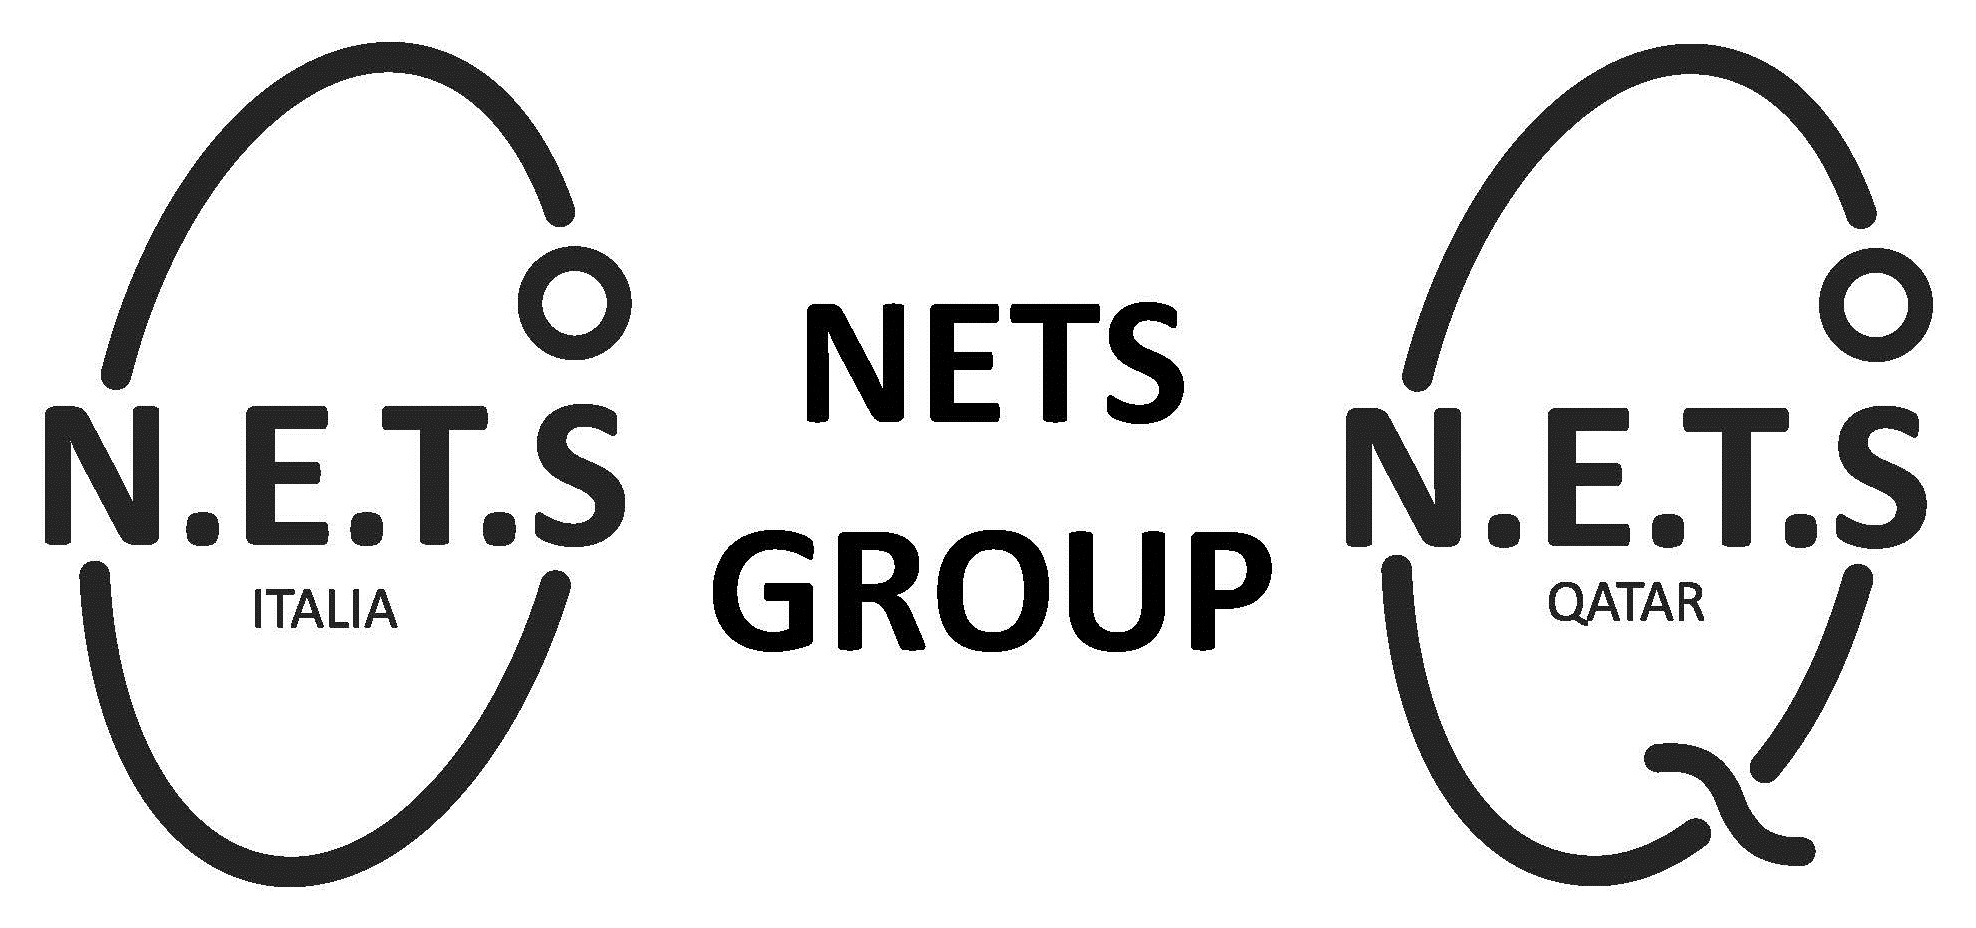 NETS GROUP